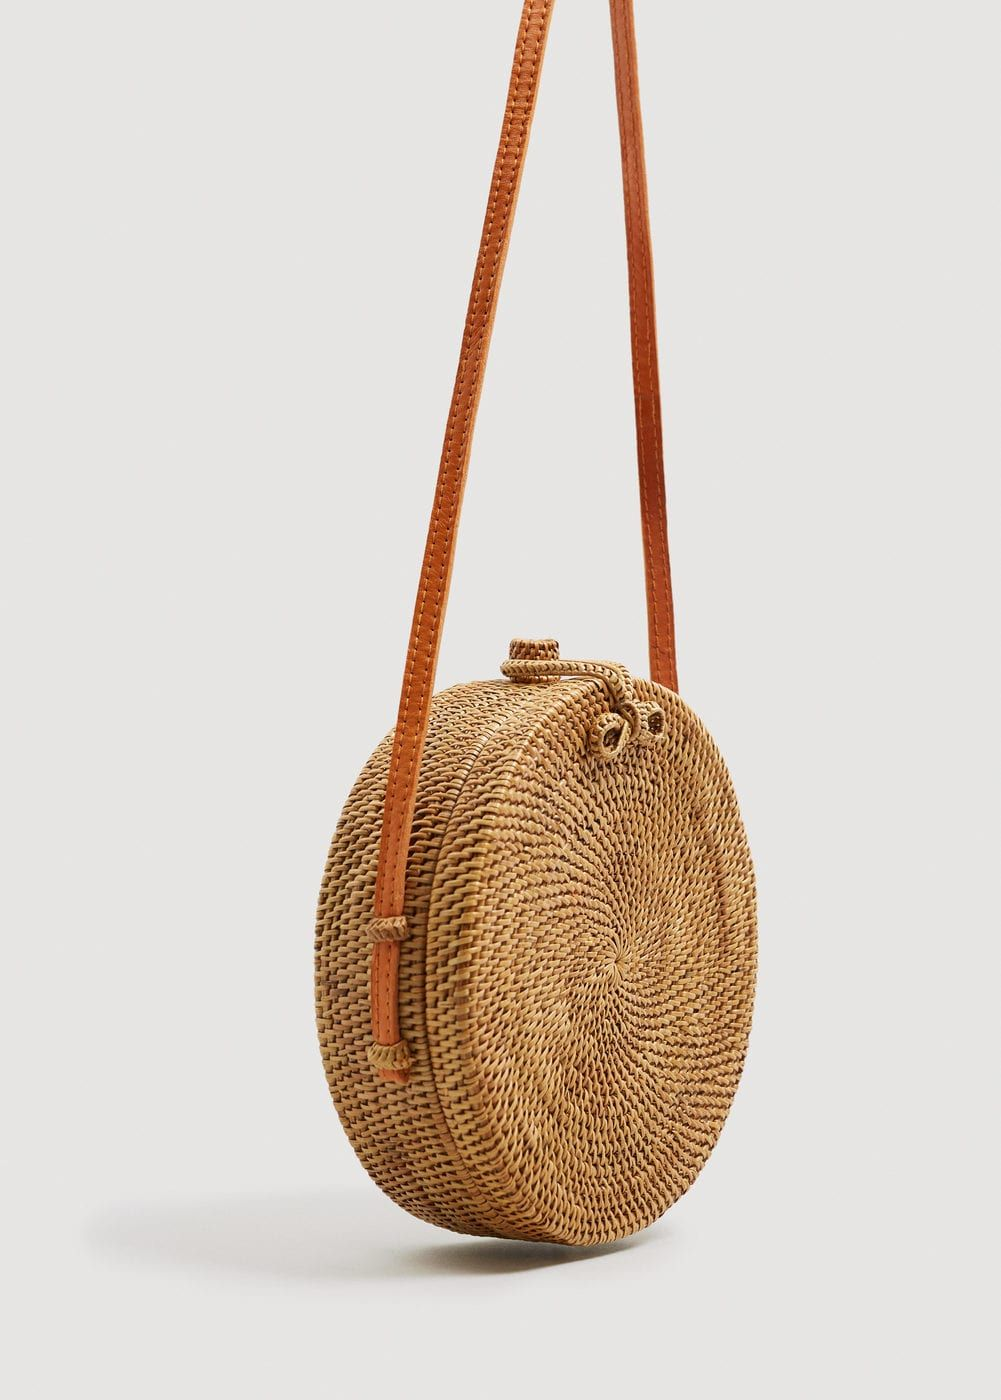 Handmade Bamboo Coffer Bag Woman Summer Fashion Inspirations